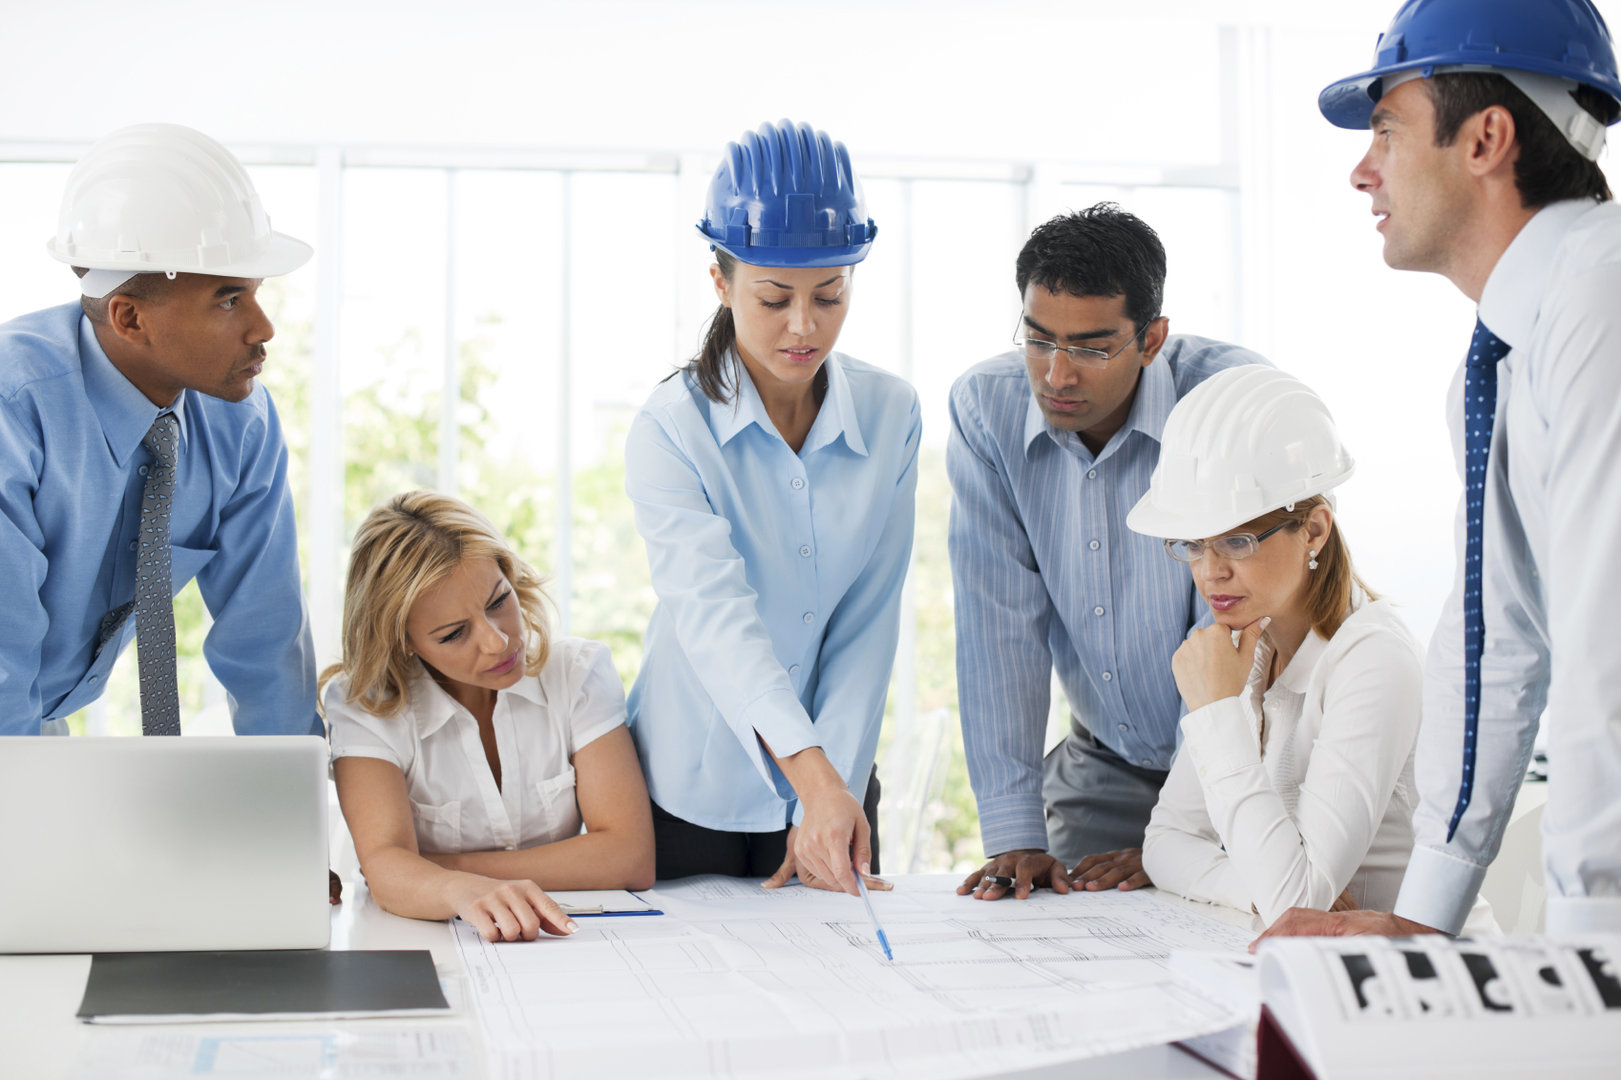 Six construction employees looking at blueprints